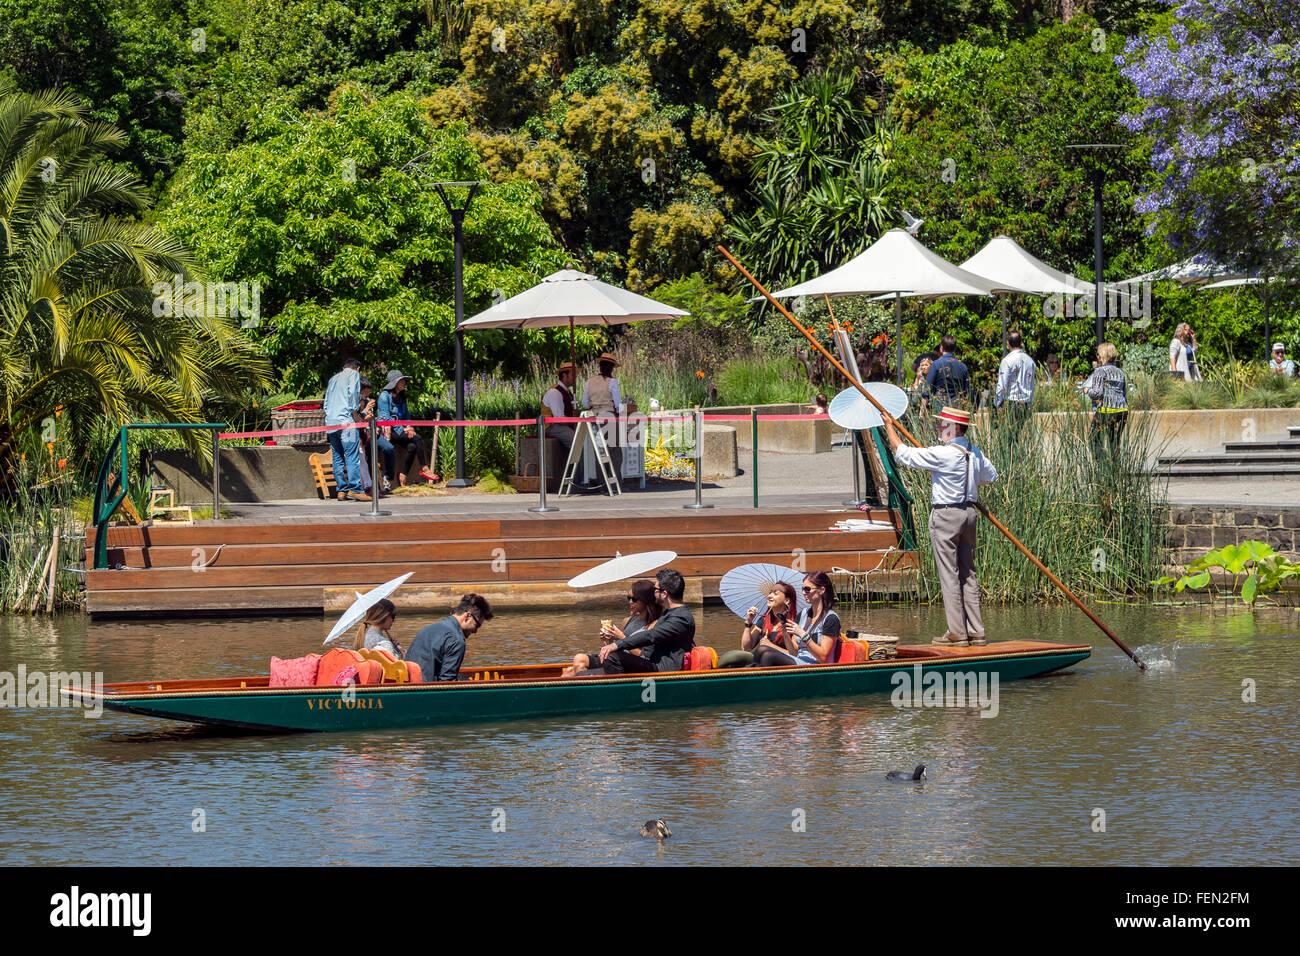 Punt Tours, The Royal Botanic Gardens, Melbourne, Australia, - Stock Image